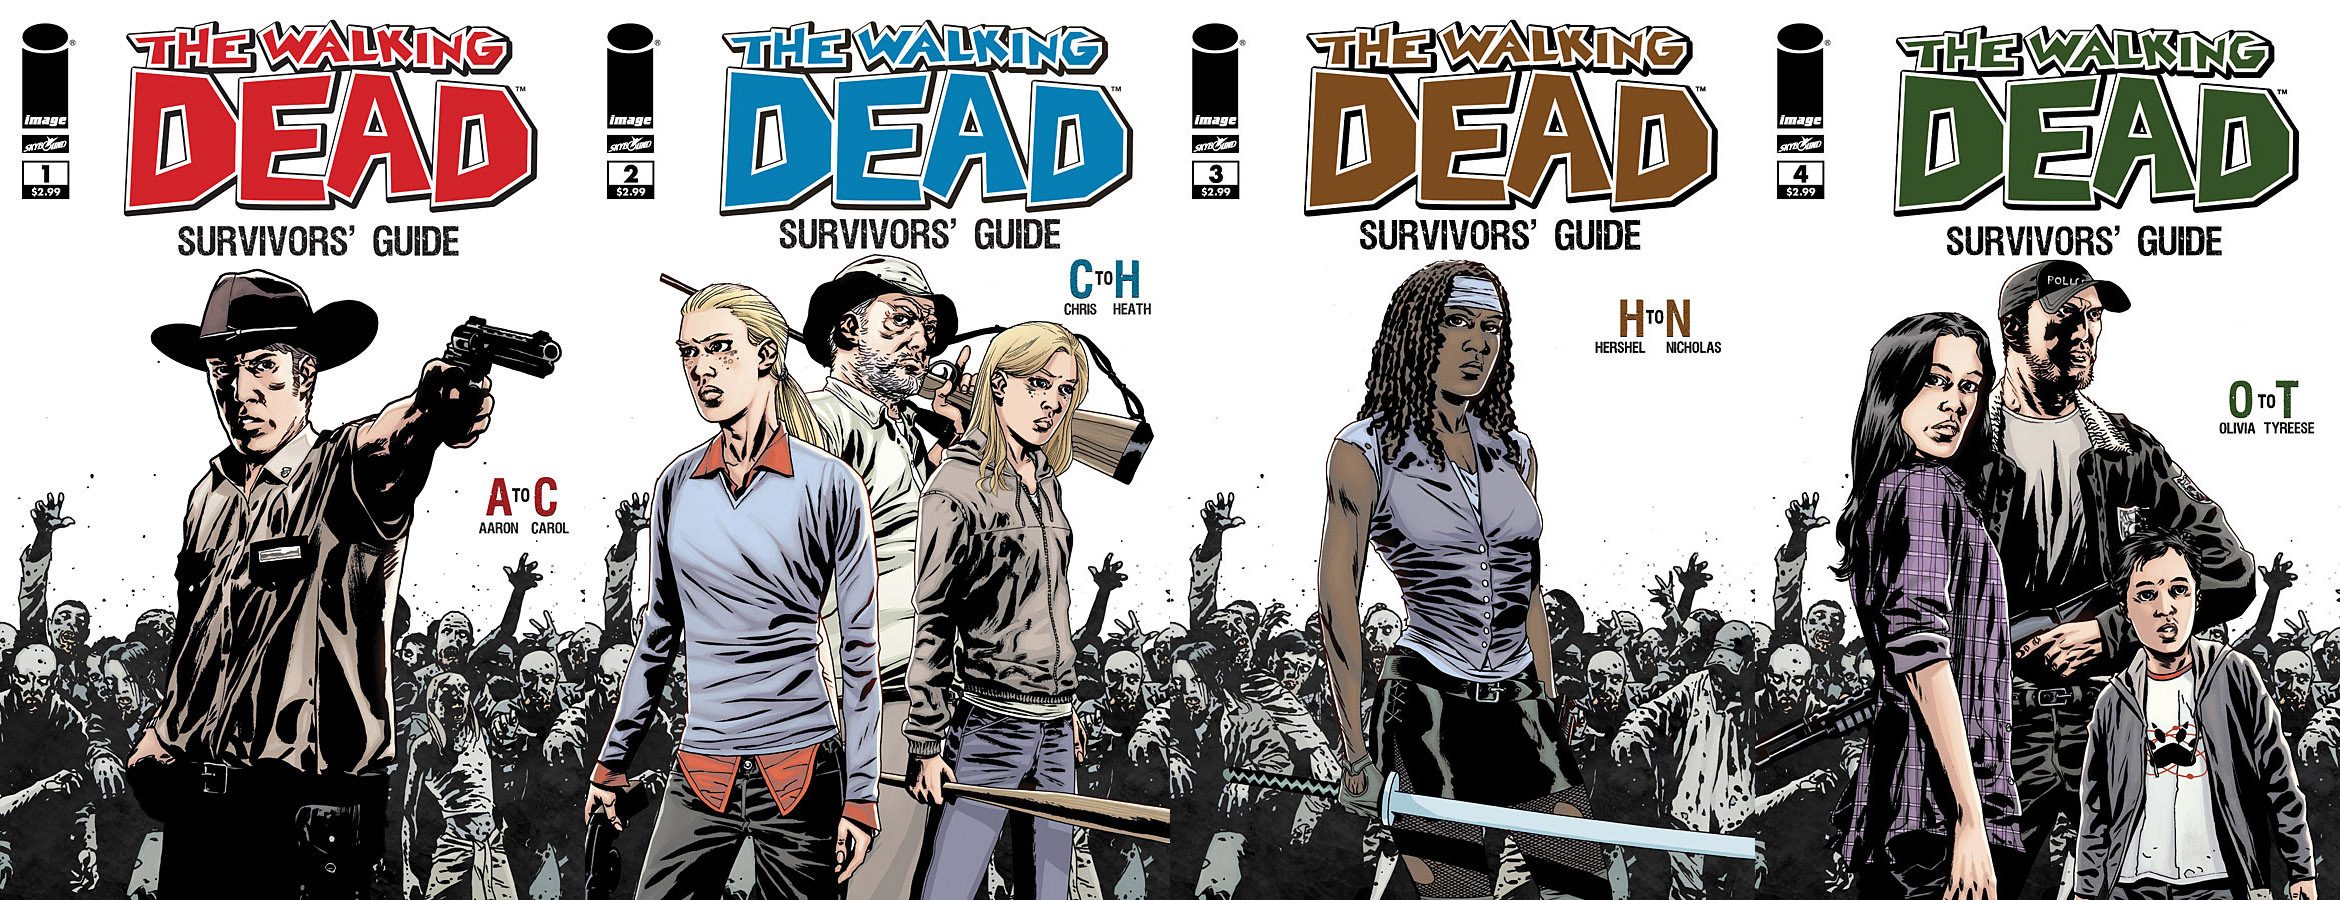 Free Download The Walking Dead Comics Your First Time Impressions